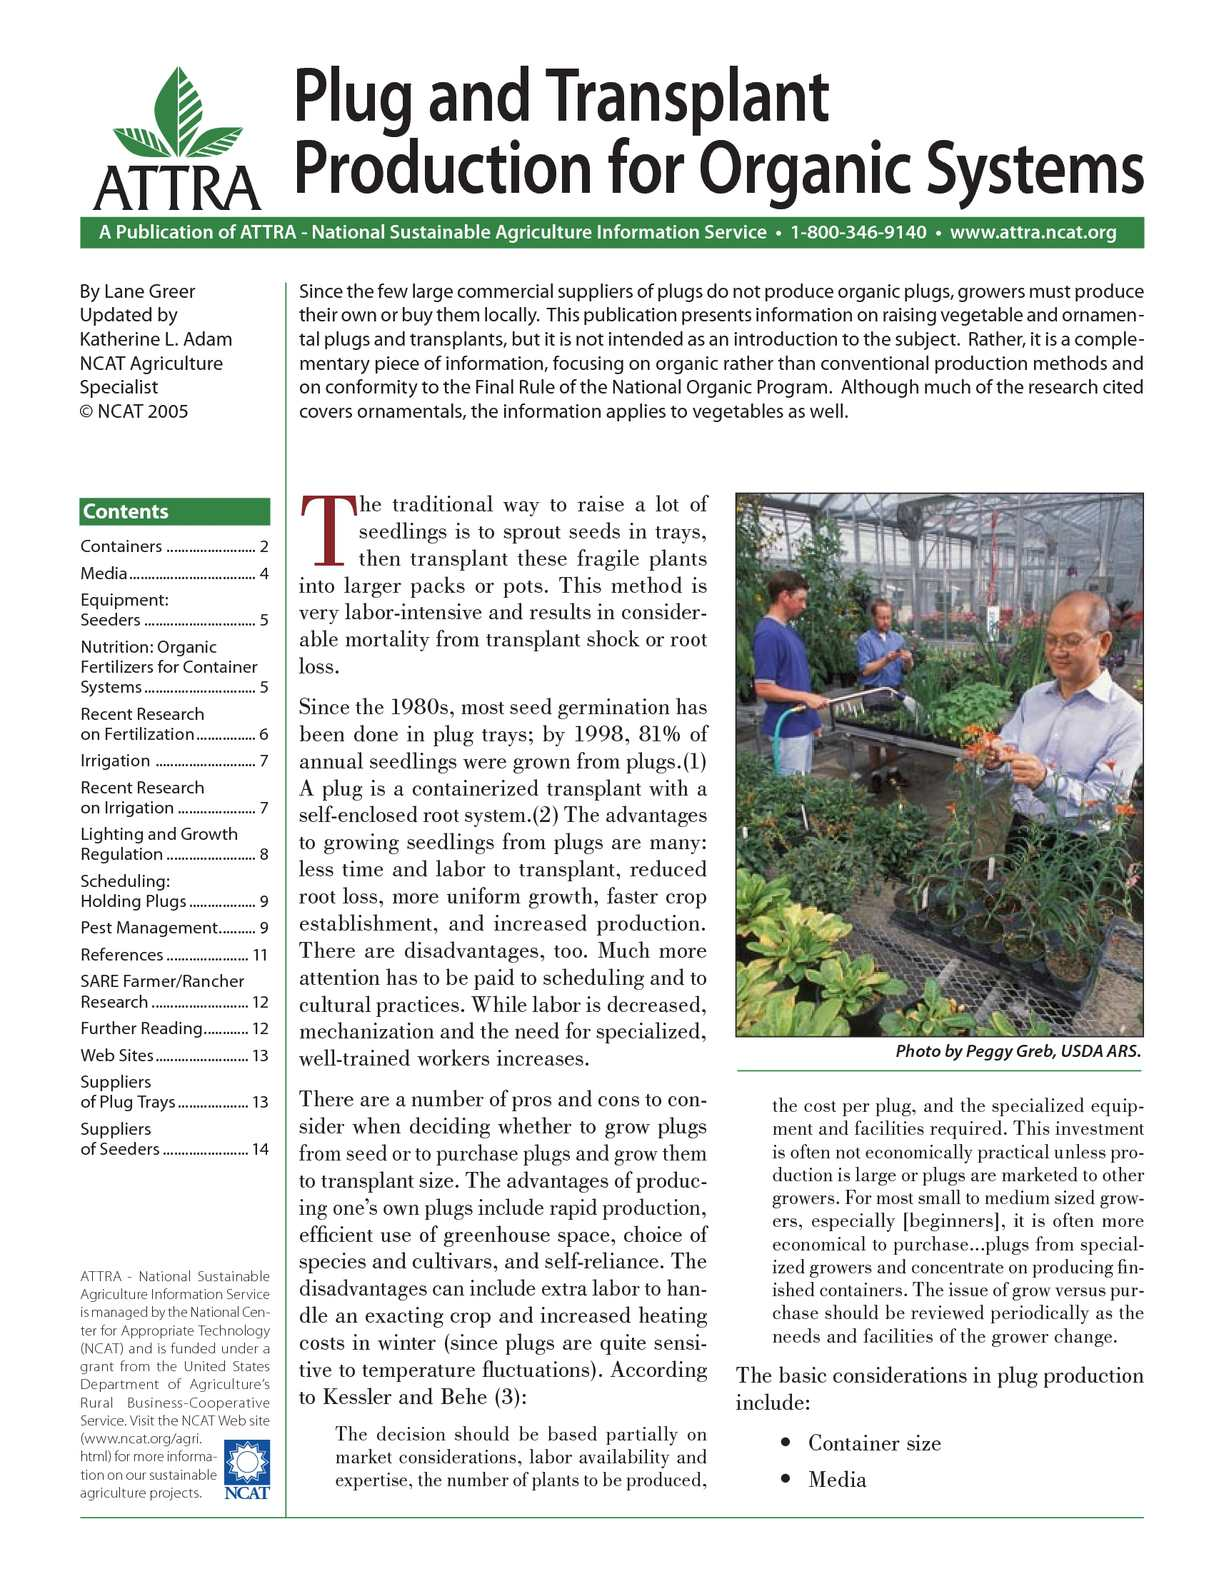 Calaméo - Plug and Transplant Production for Organic Systems